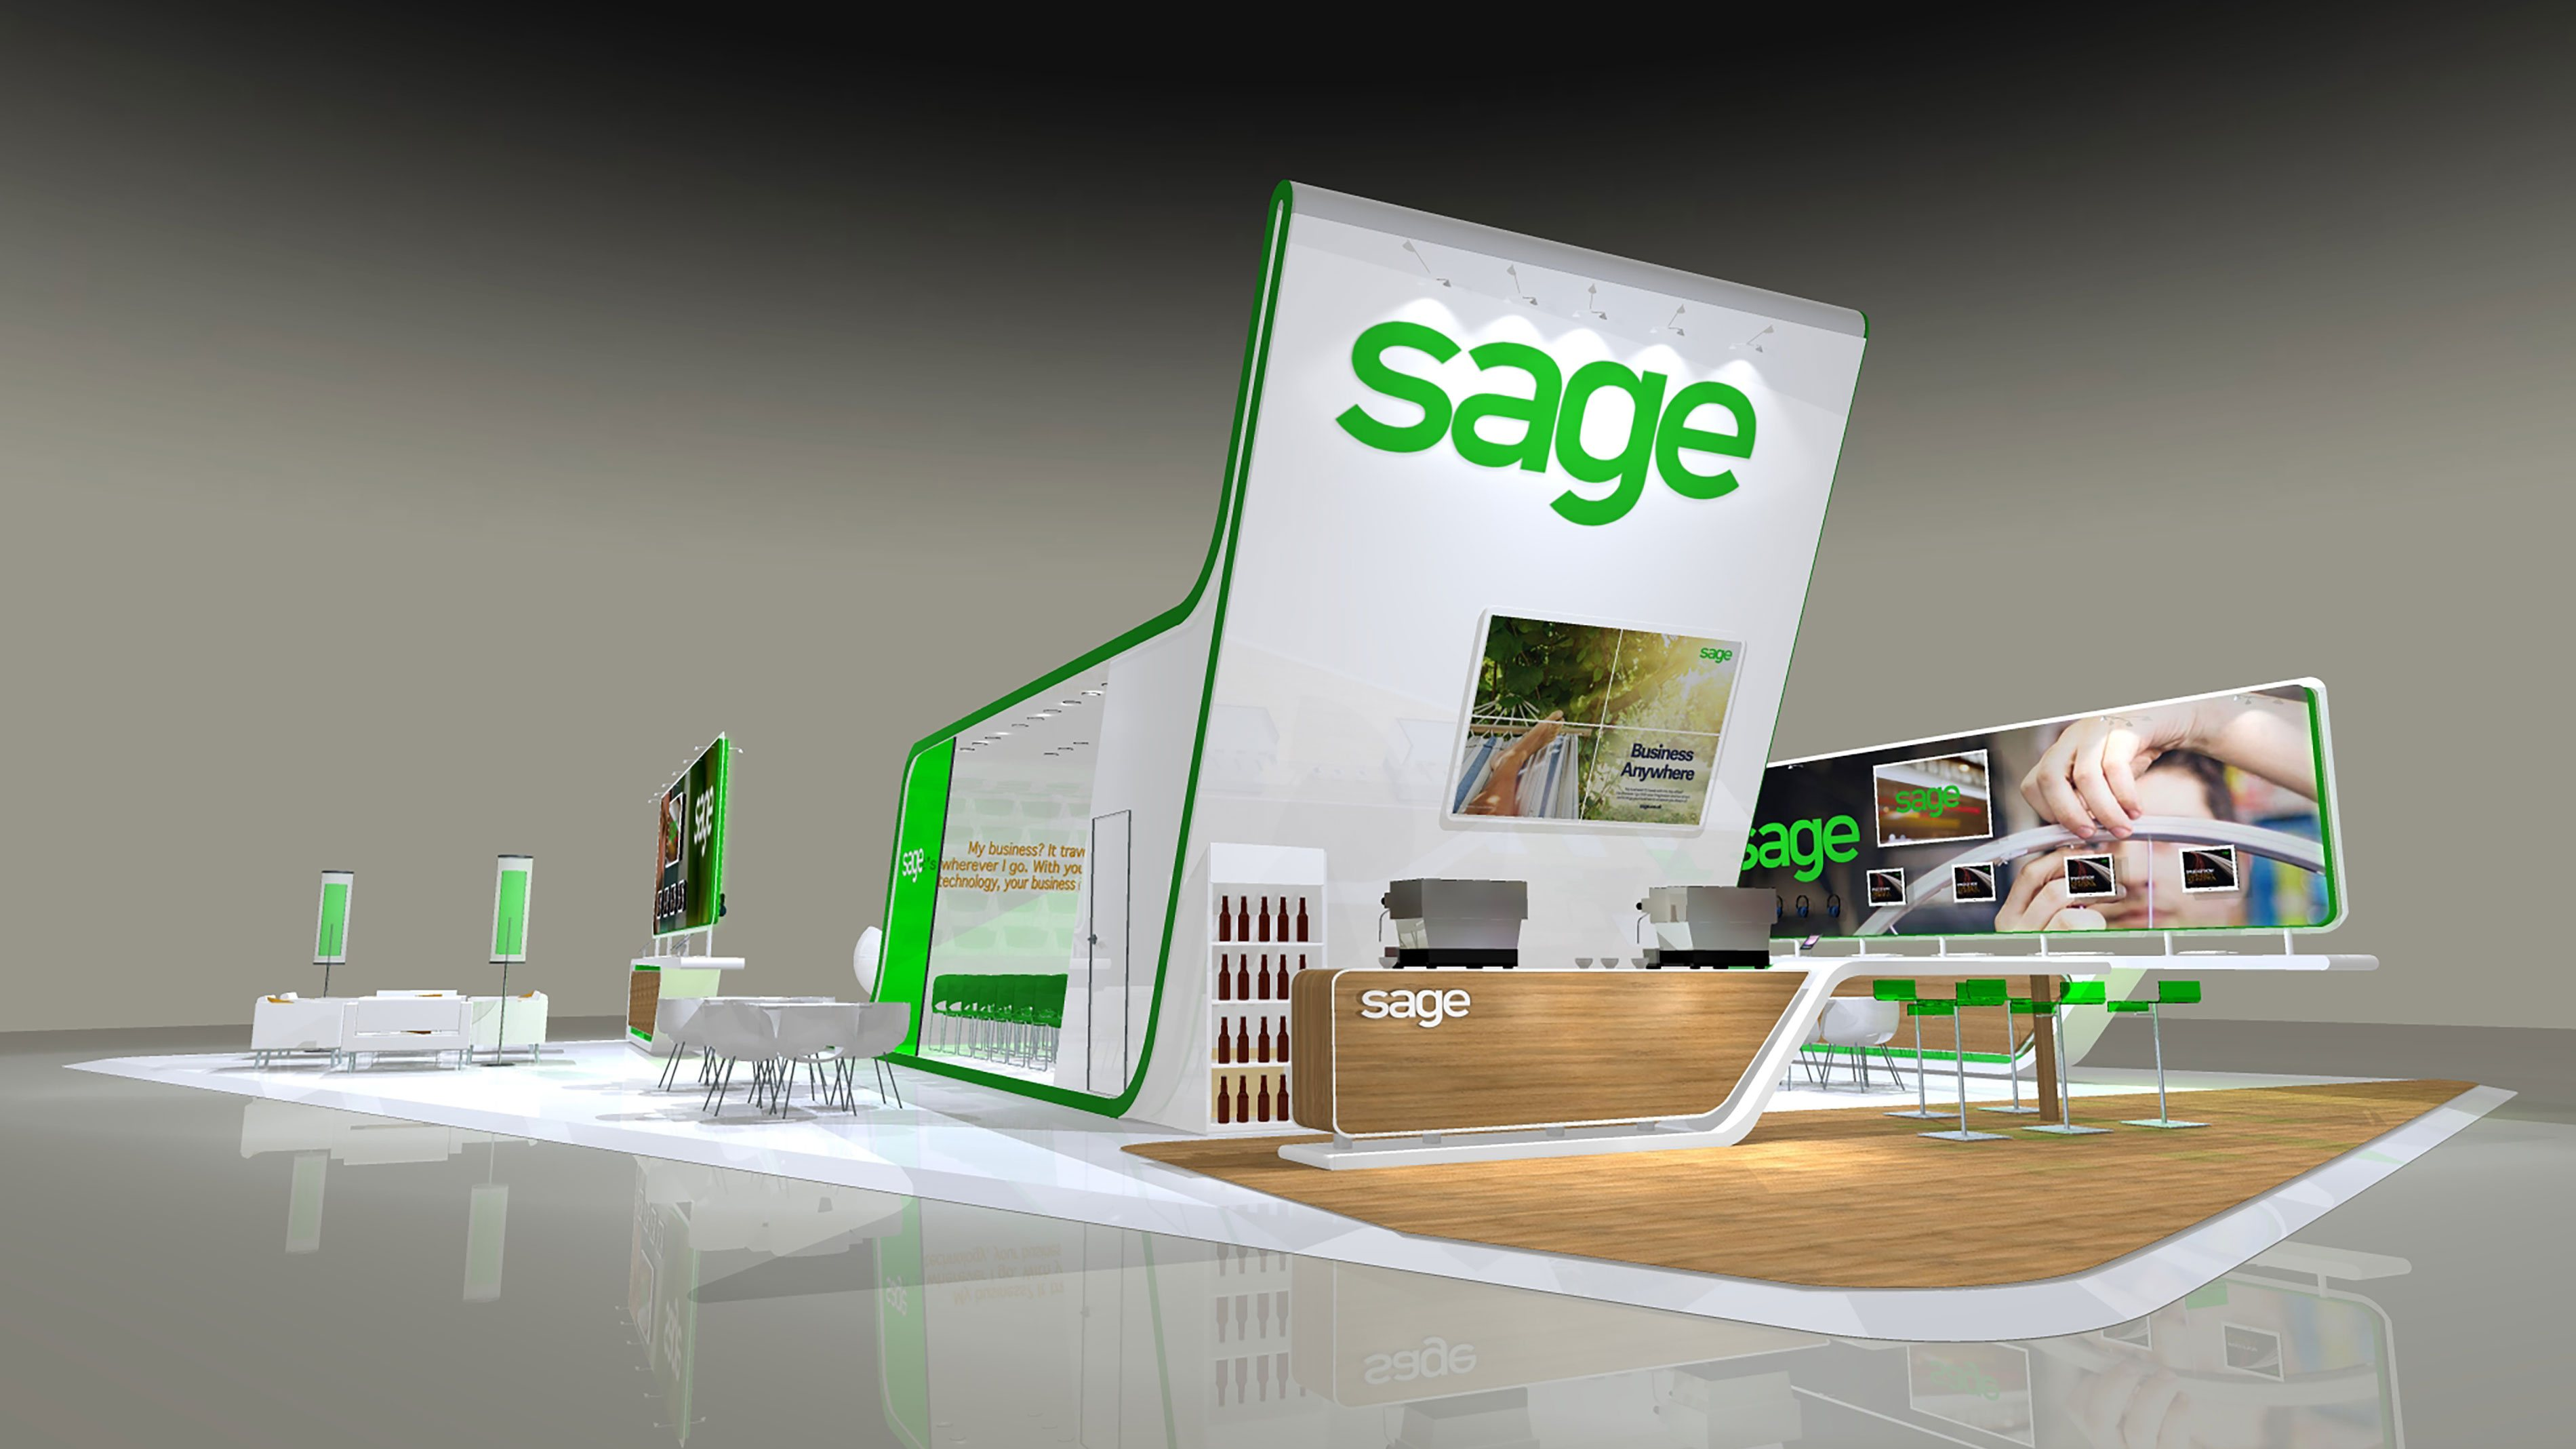 Exhibition stand design that steals the show